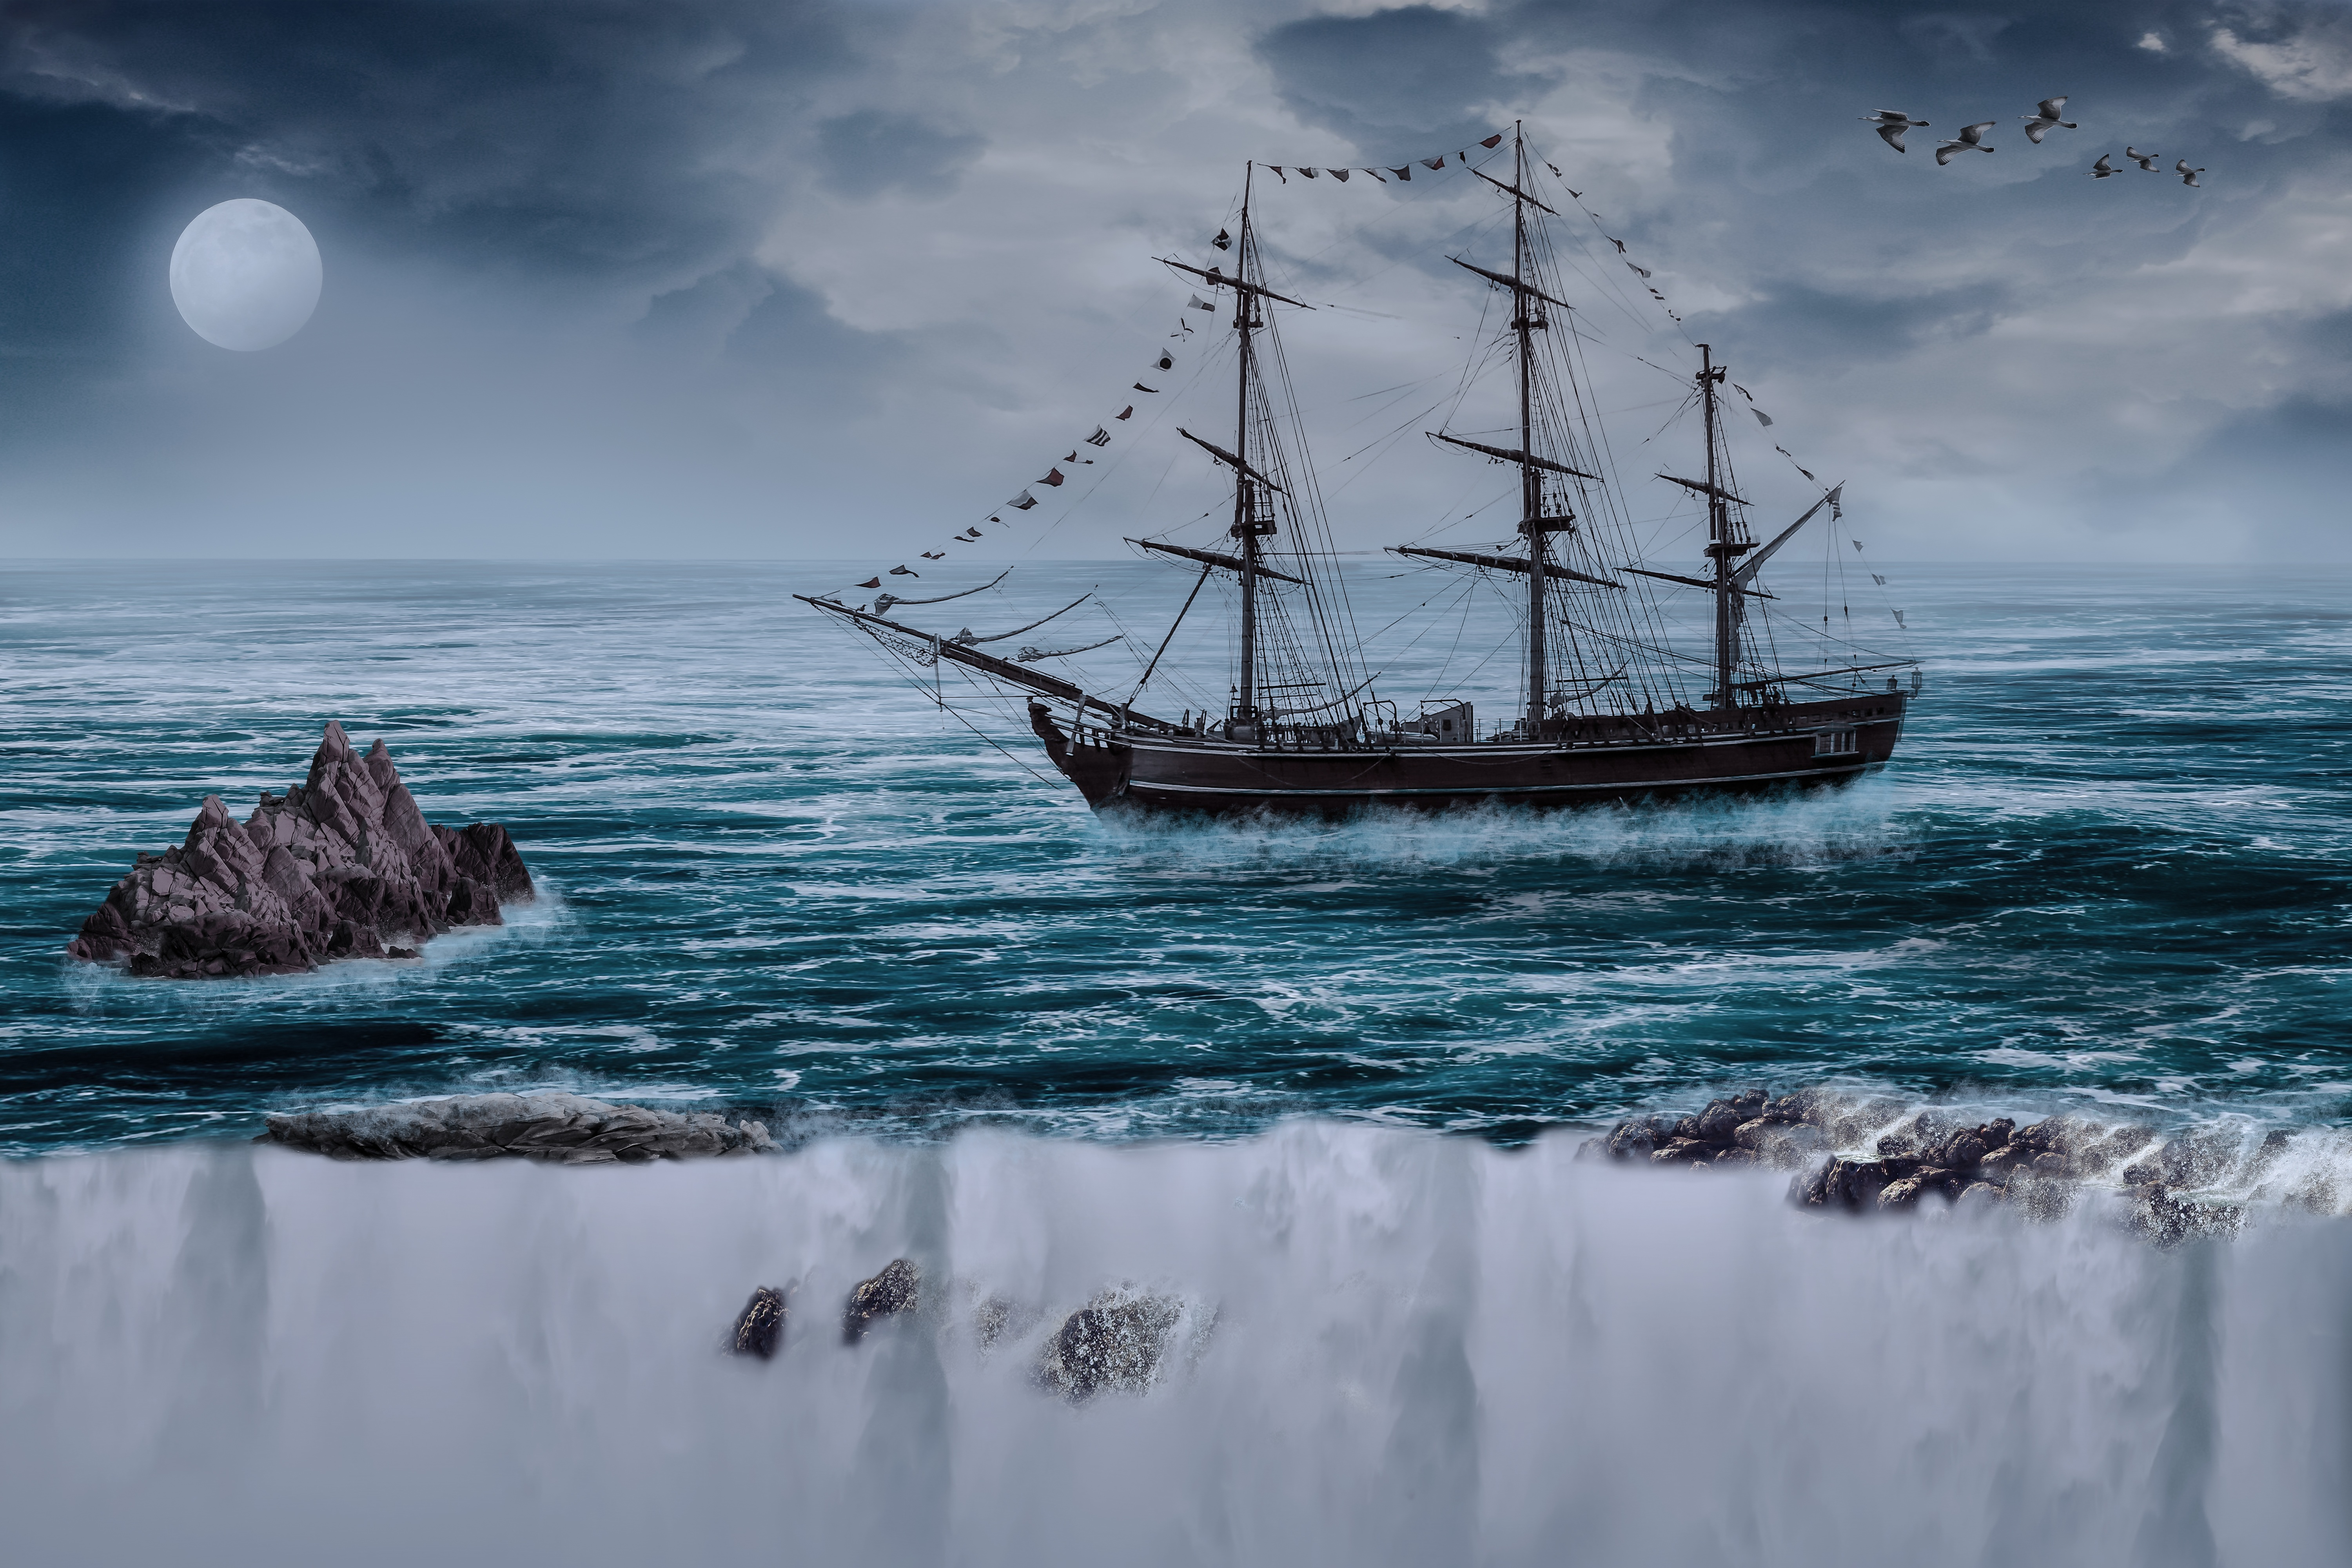 145216 Screensavers and Wallpapers Photoshop for phone. Download Art, Sea, Waves, Break, Precipice, Photoshop, Sailboat, Vessel, Sailing Boat pictures for free